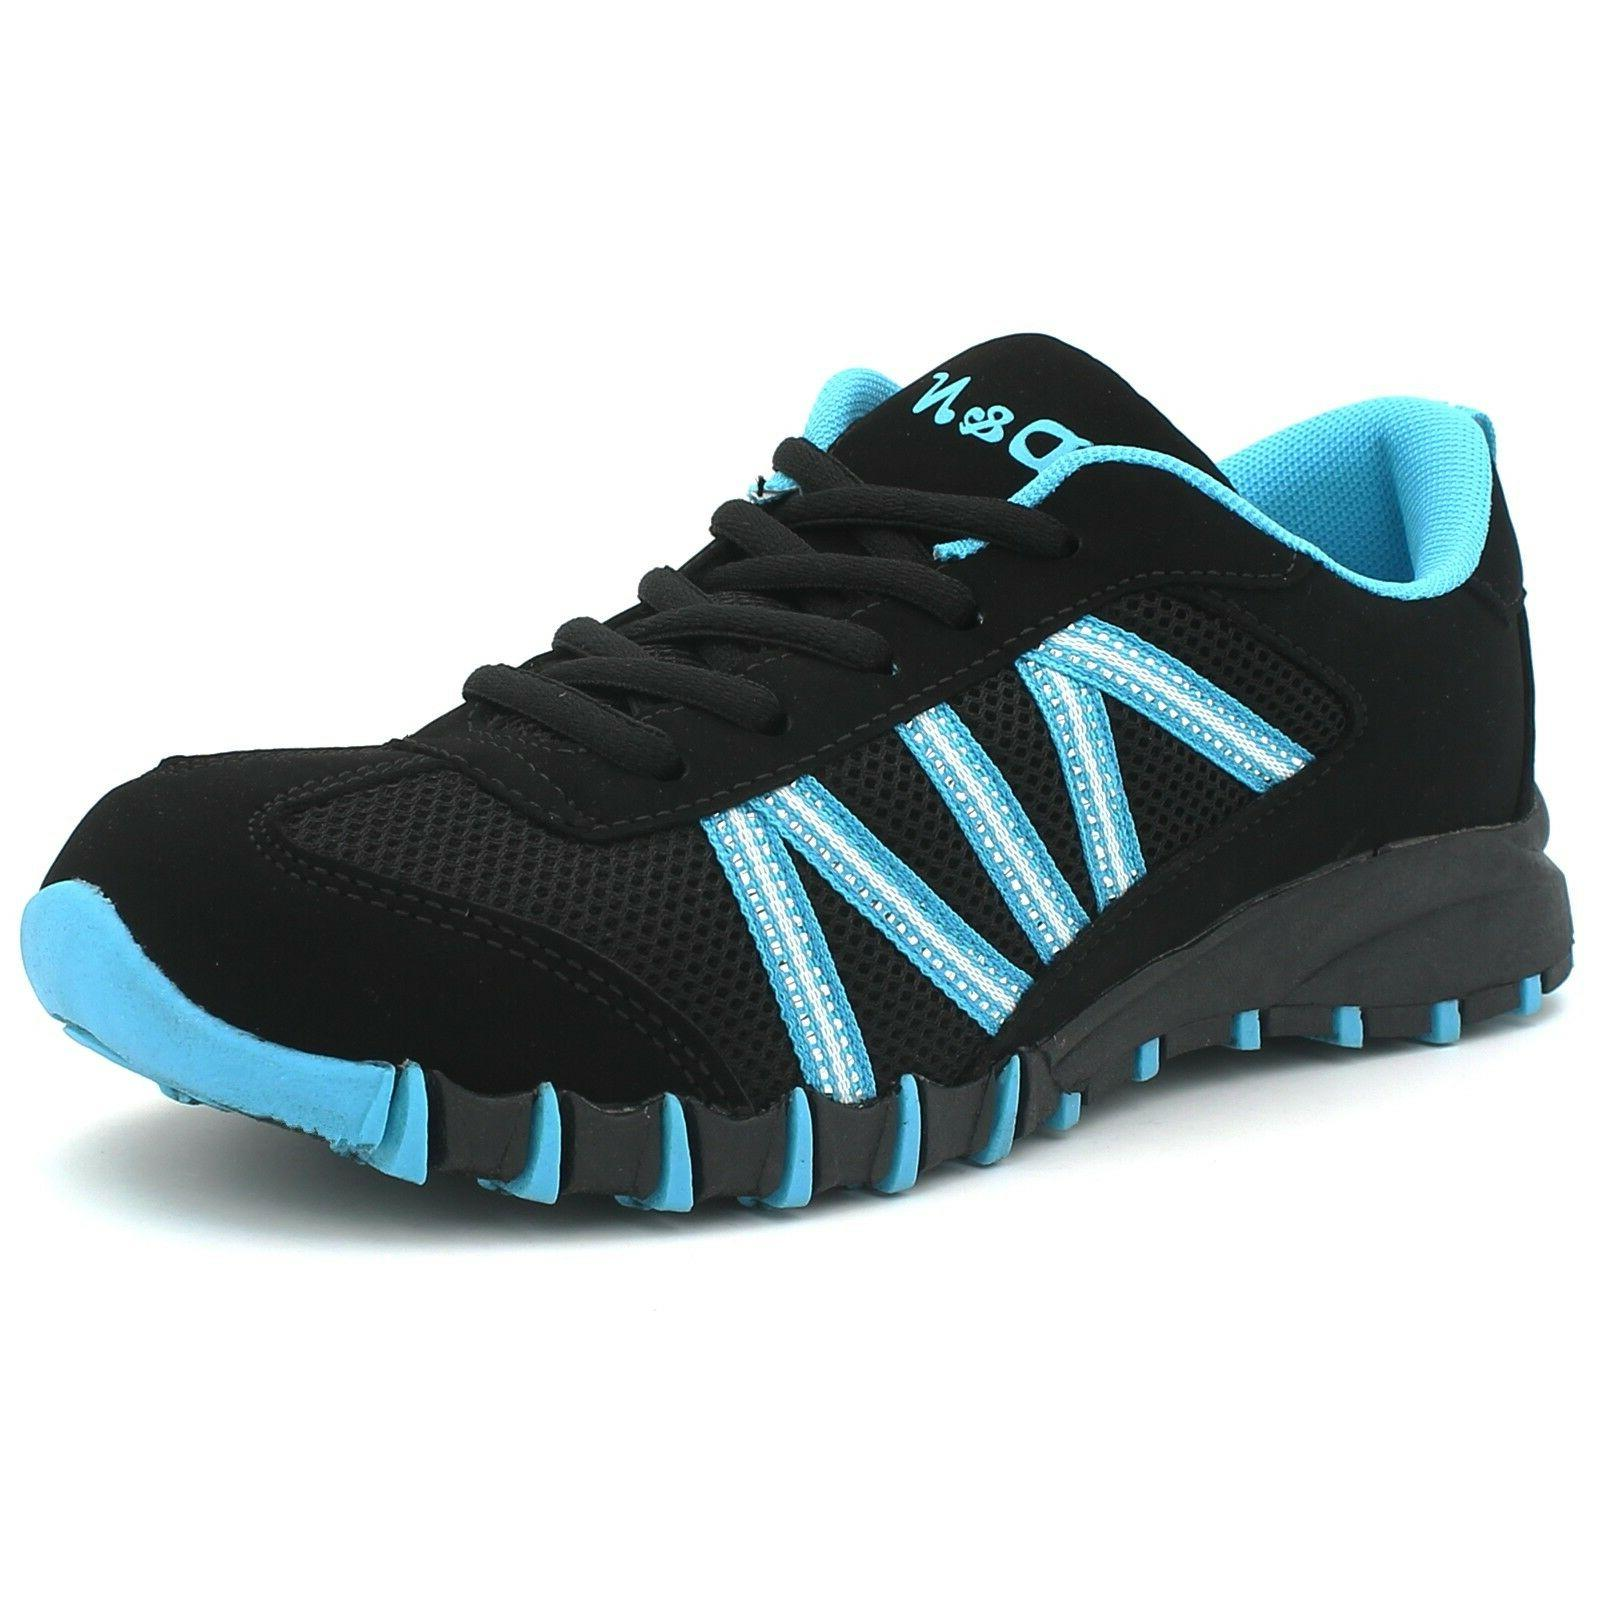 Women's Sneaker Athletic Tennis Shoes Walking Running Lace-Up